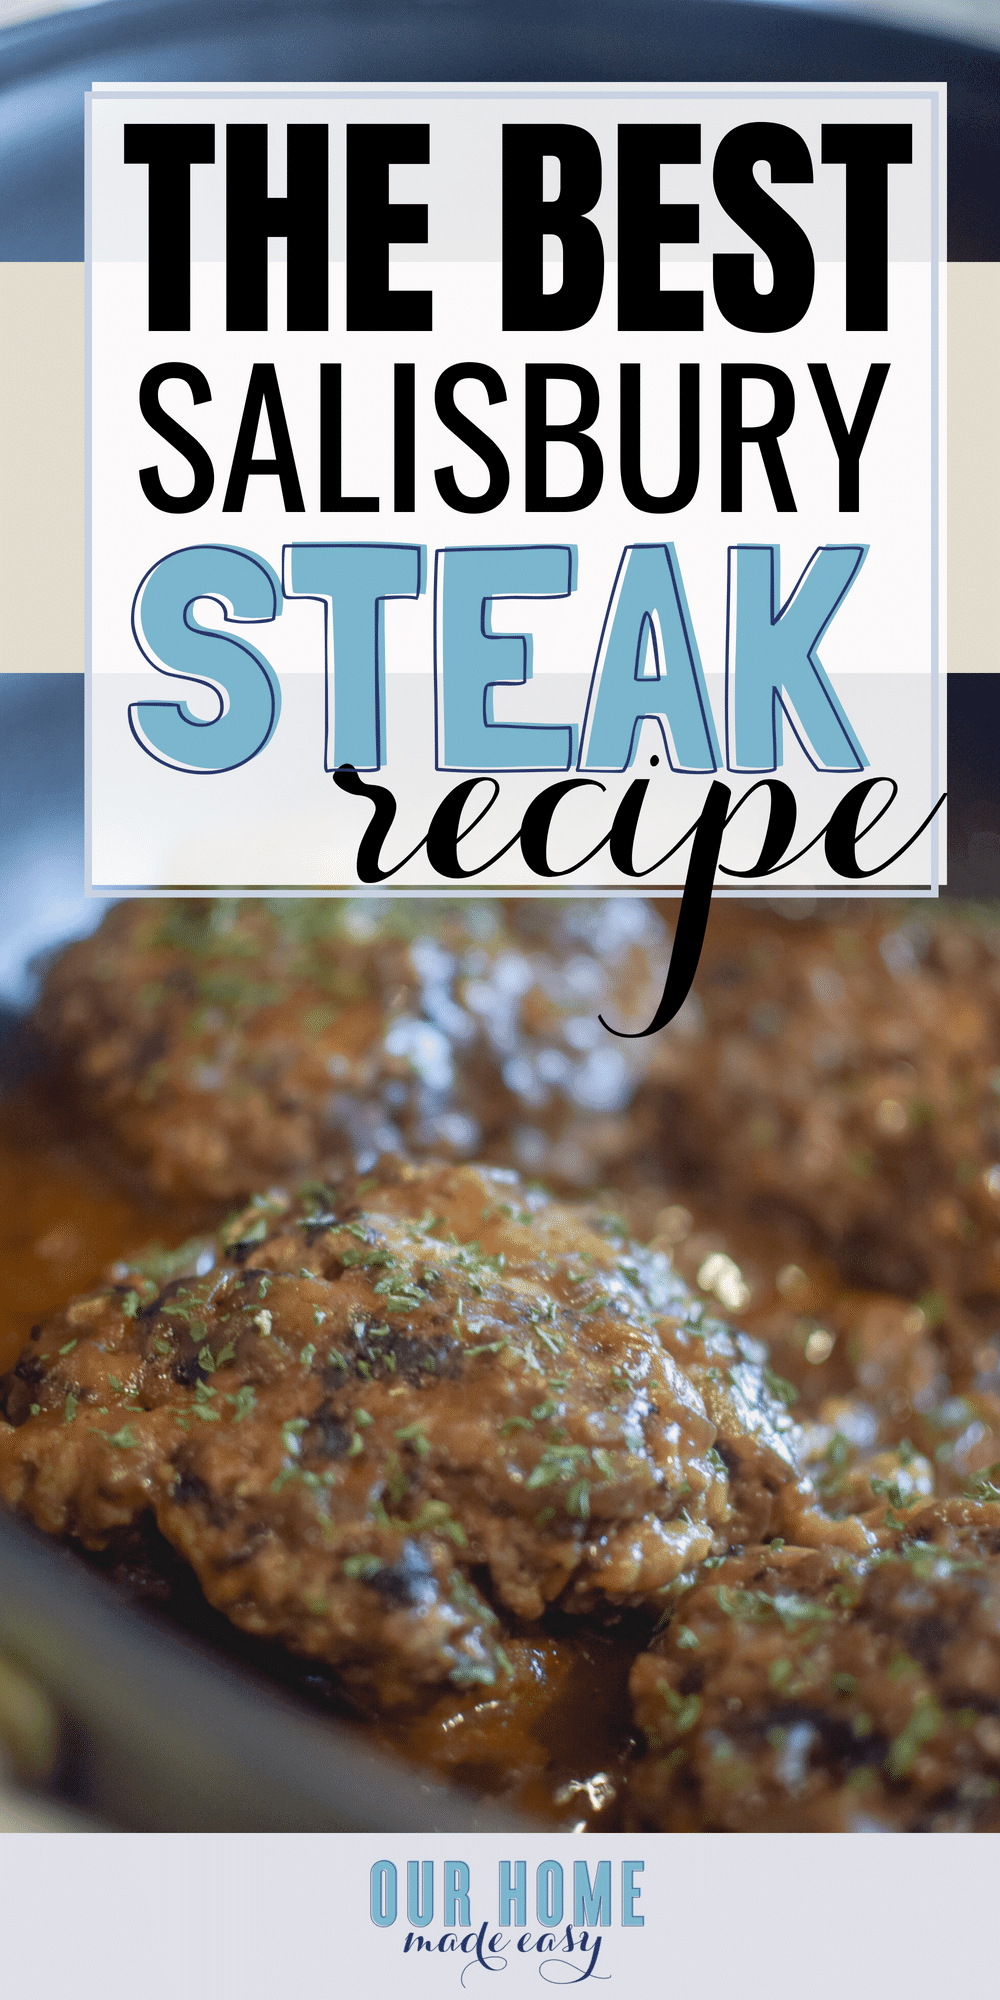 Make this easy Salisbury steak recipe for dinner! It's comfort food with almost no effort! #dinner #recipe #beef #dinnerrecipe